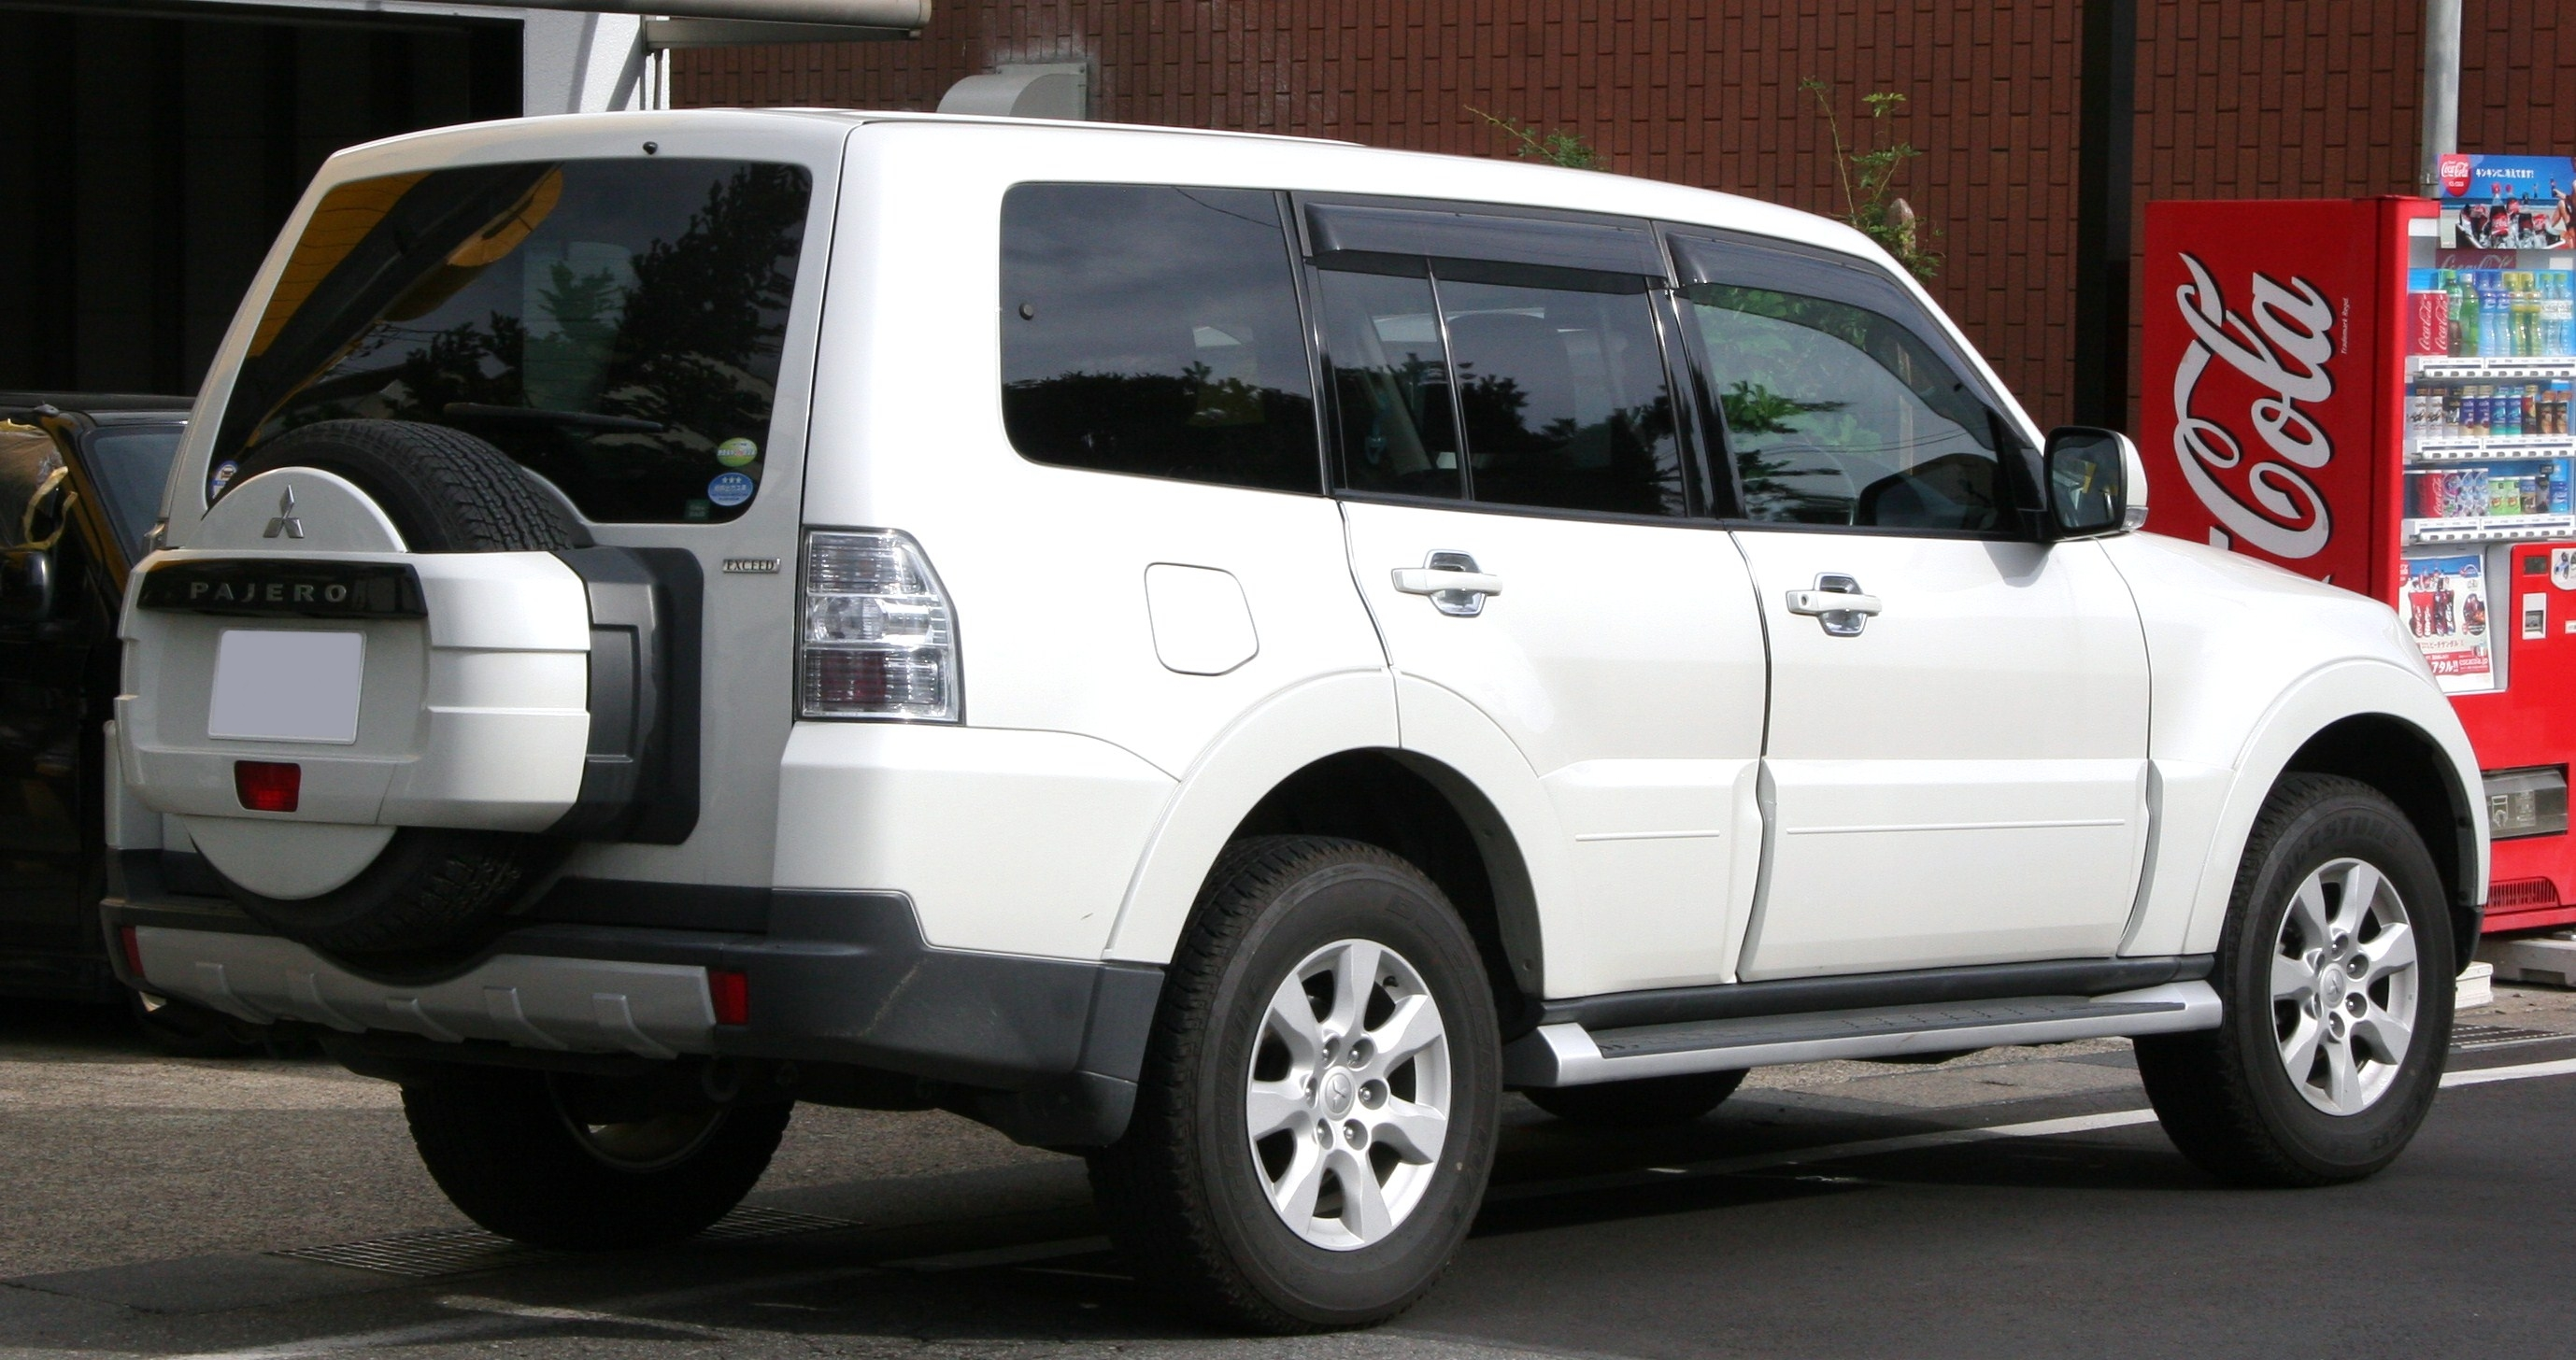 File:Mitsubishi Pajero Exceed rear.jpg - Wikimedia Commons